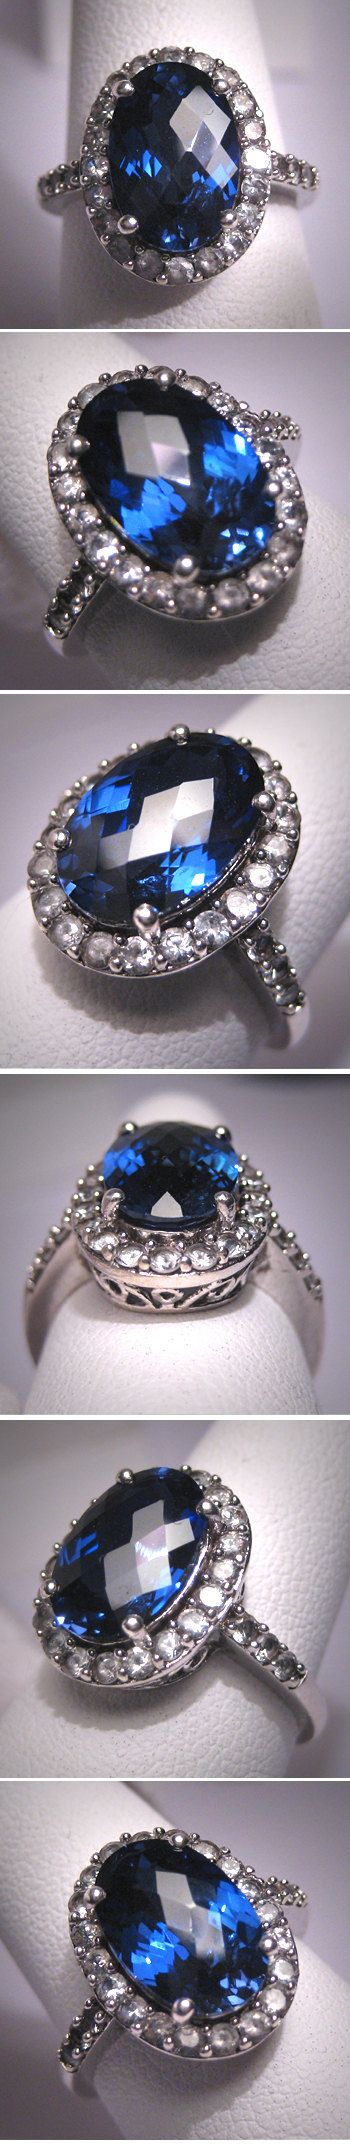 Vintage Sapphire Wedding Ring..want it! Or something similar its the idea <3